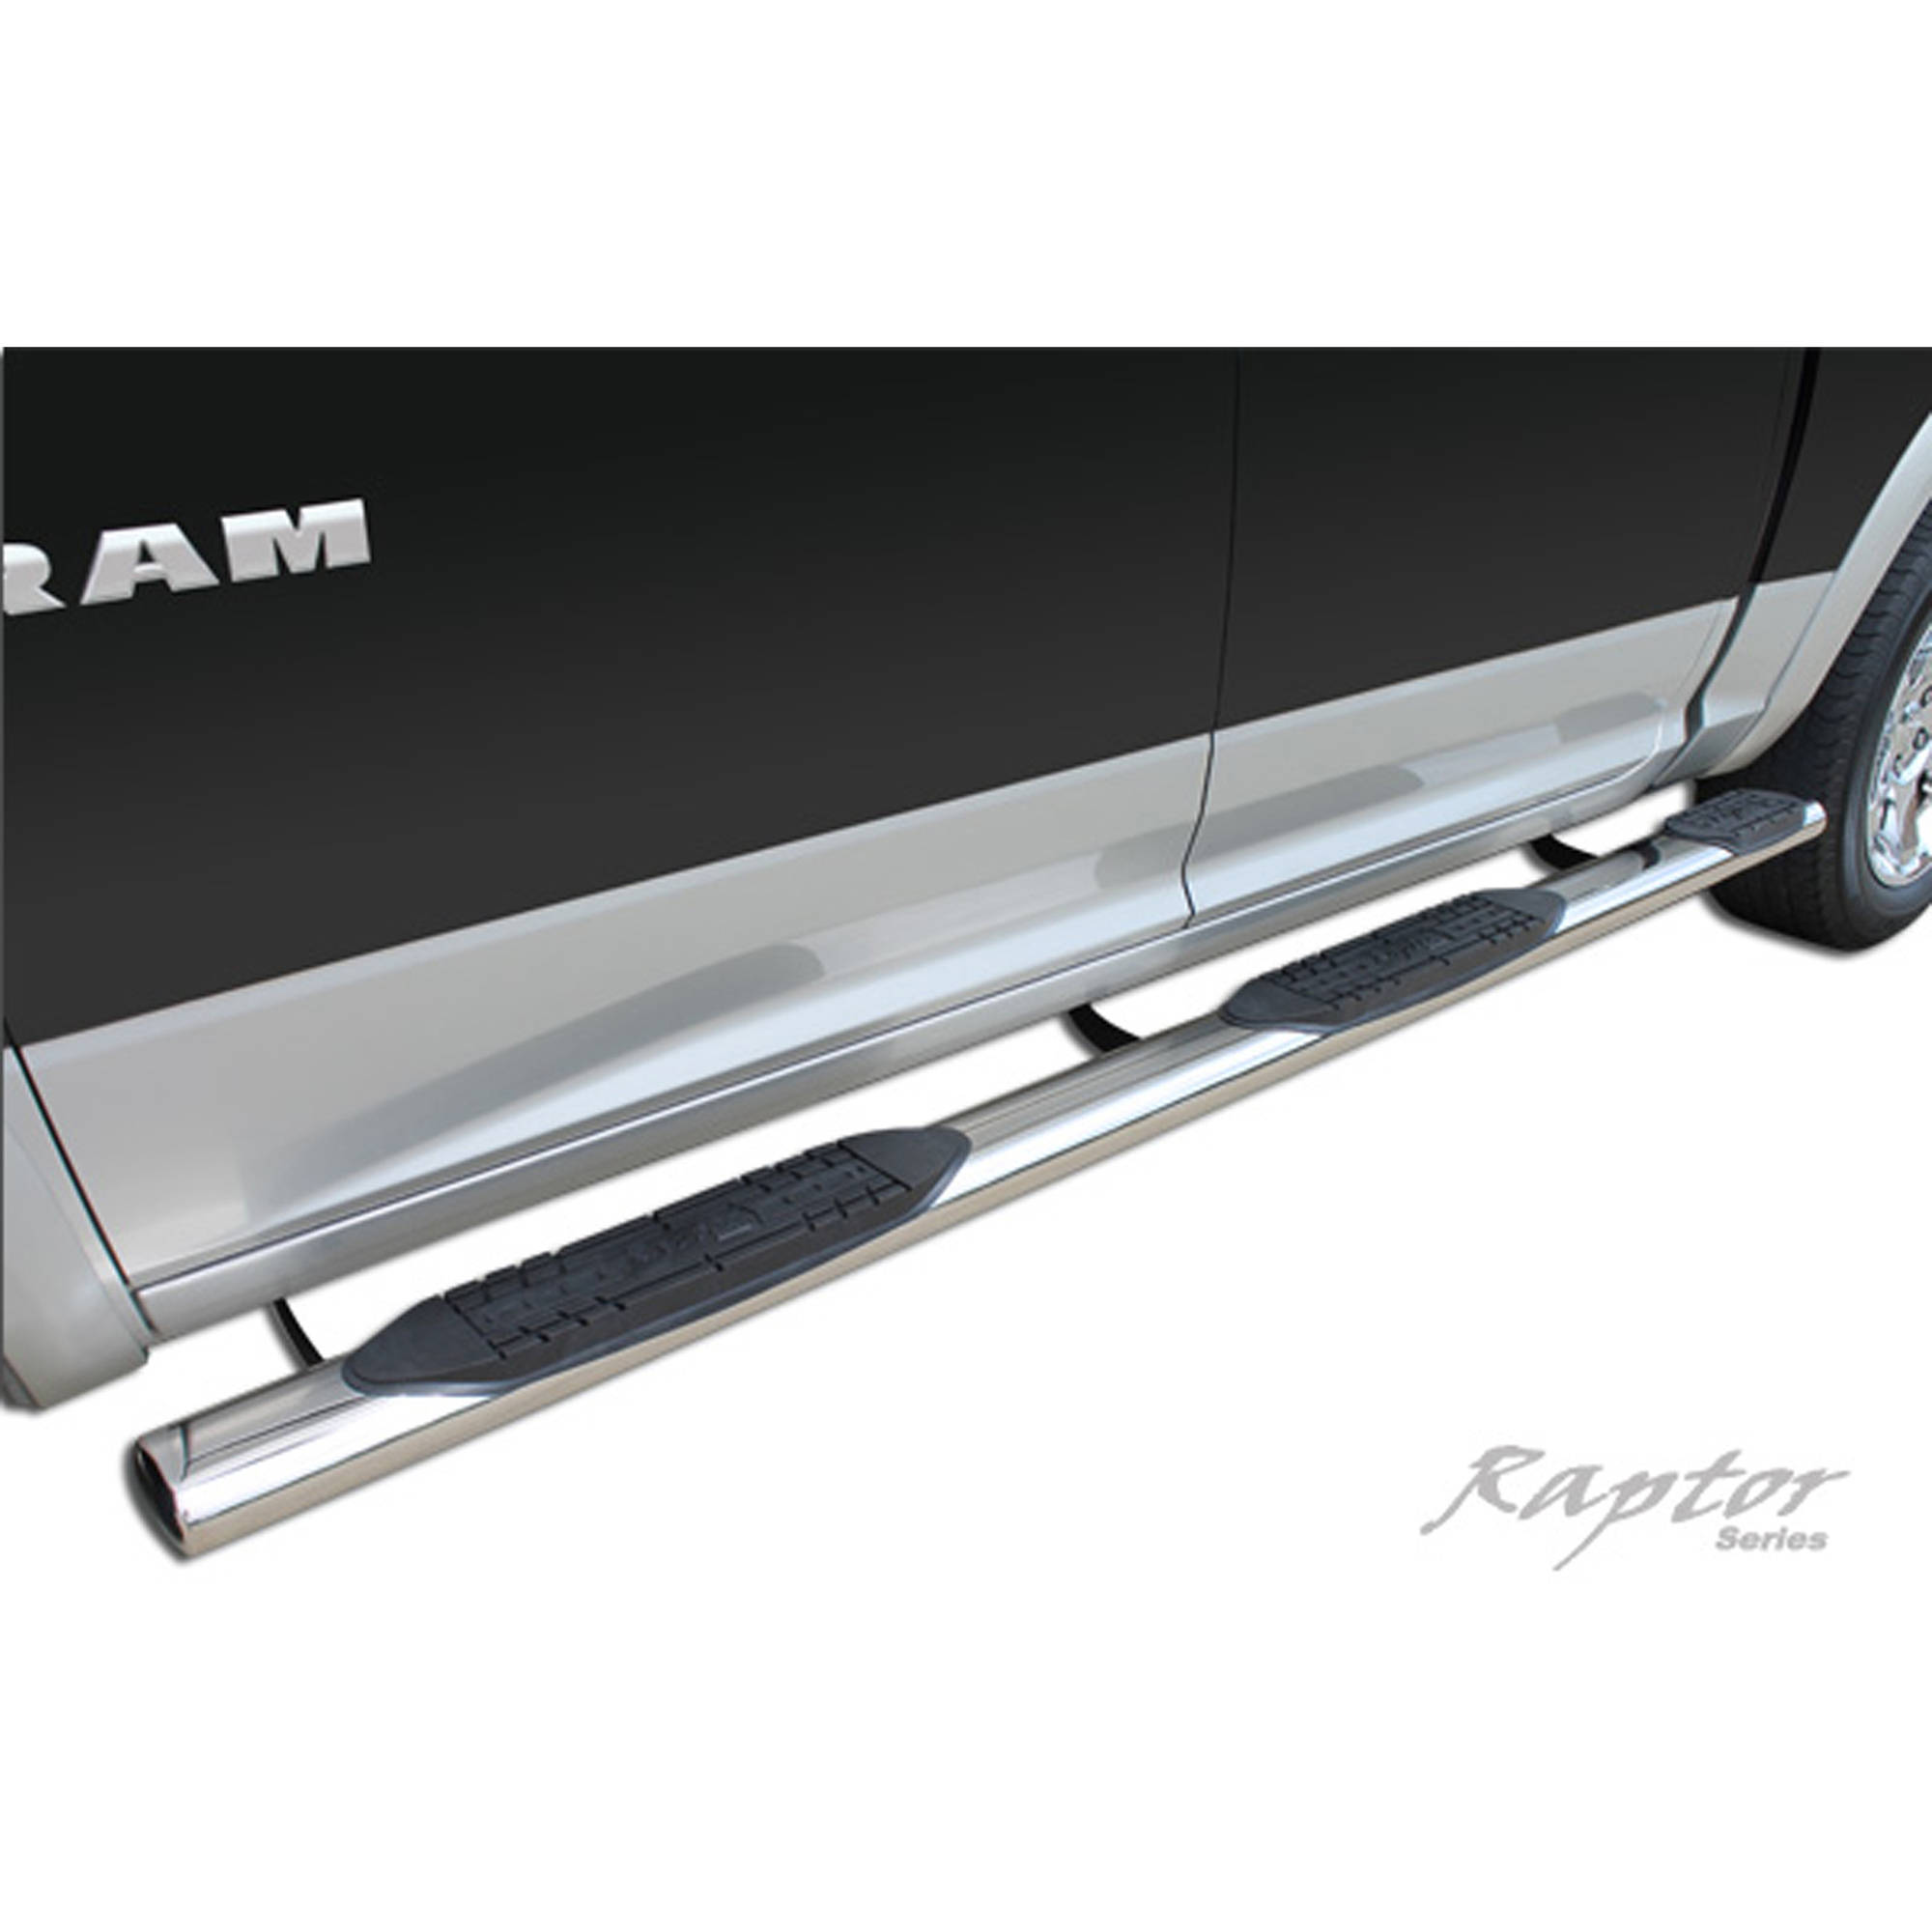 "Raptor Series 10-15 Dodge Ram 2500/3500 Crew Cab (6.4' Bed) withDEF Tank) 5"" W2W Oval Steps, Stainless Steel"